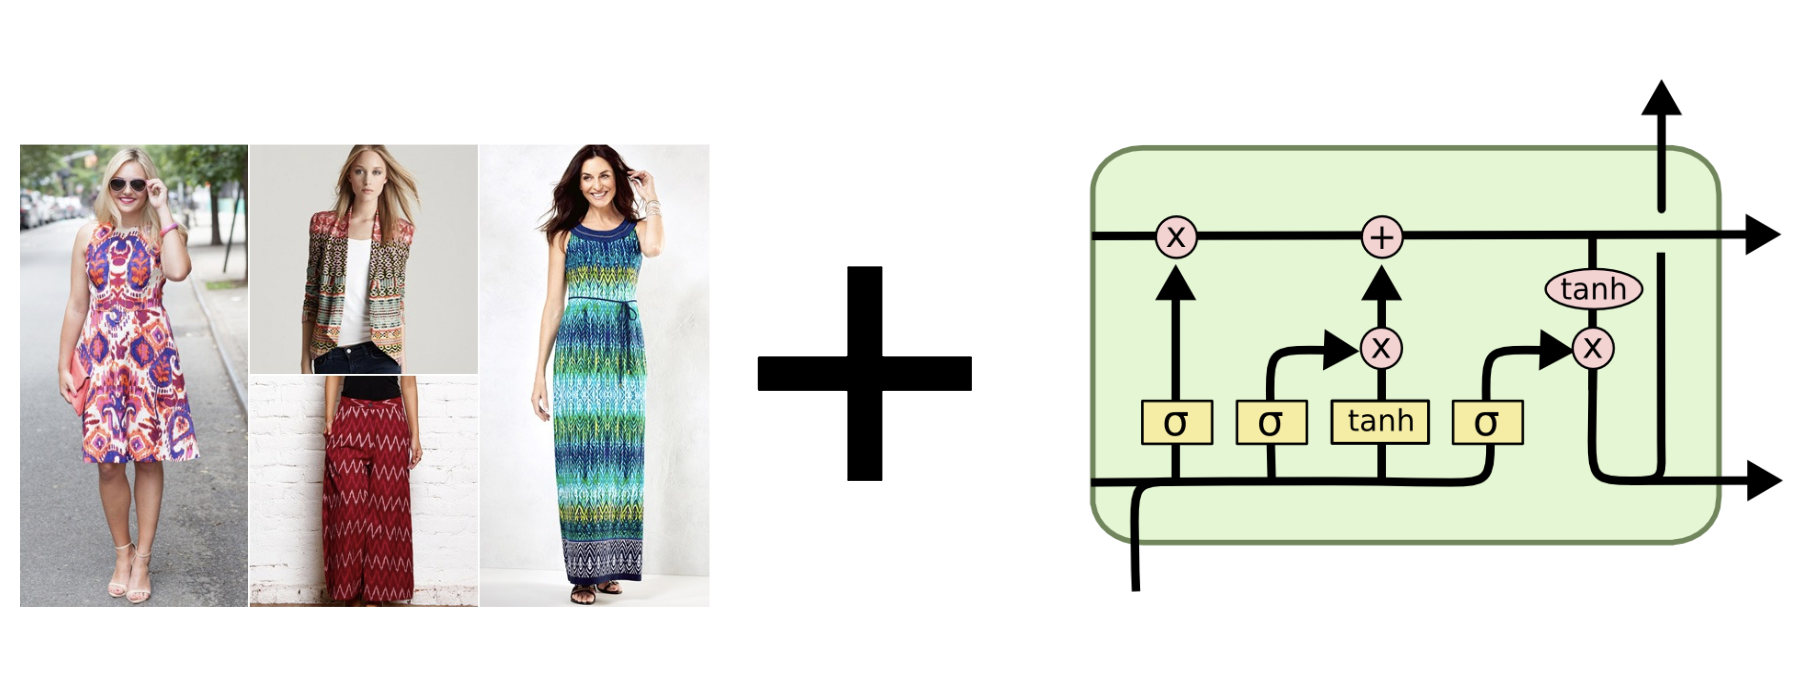 Forecast Fashion Trends using LSTM including timeseries cross-validation